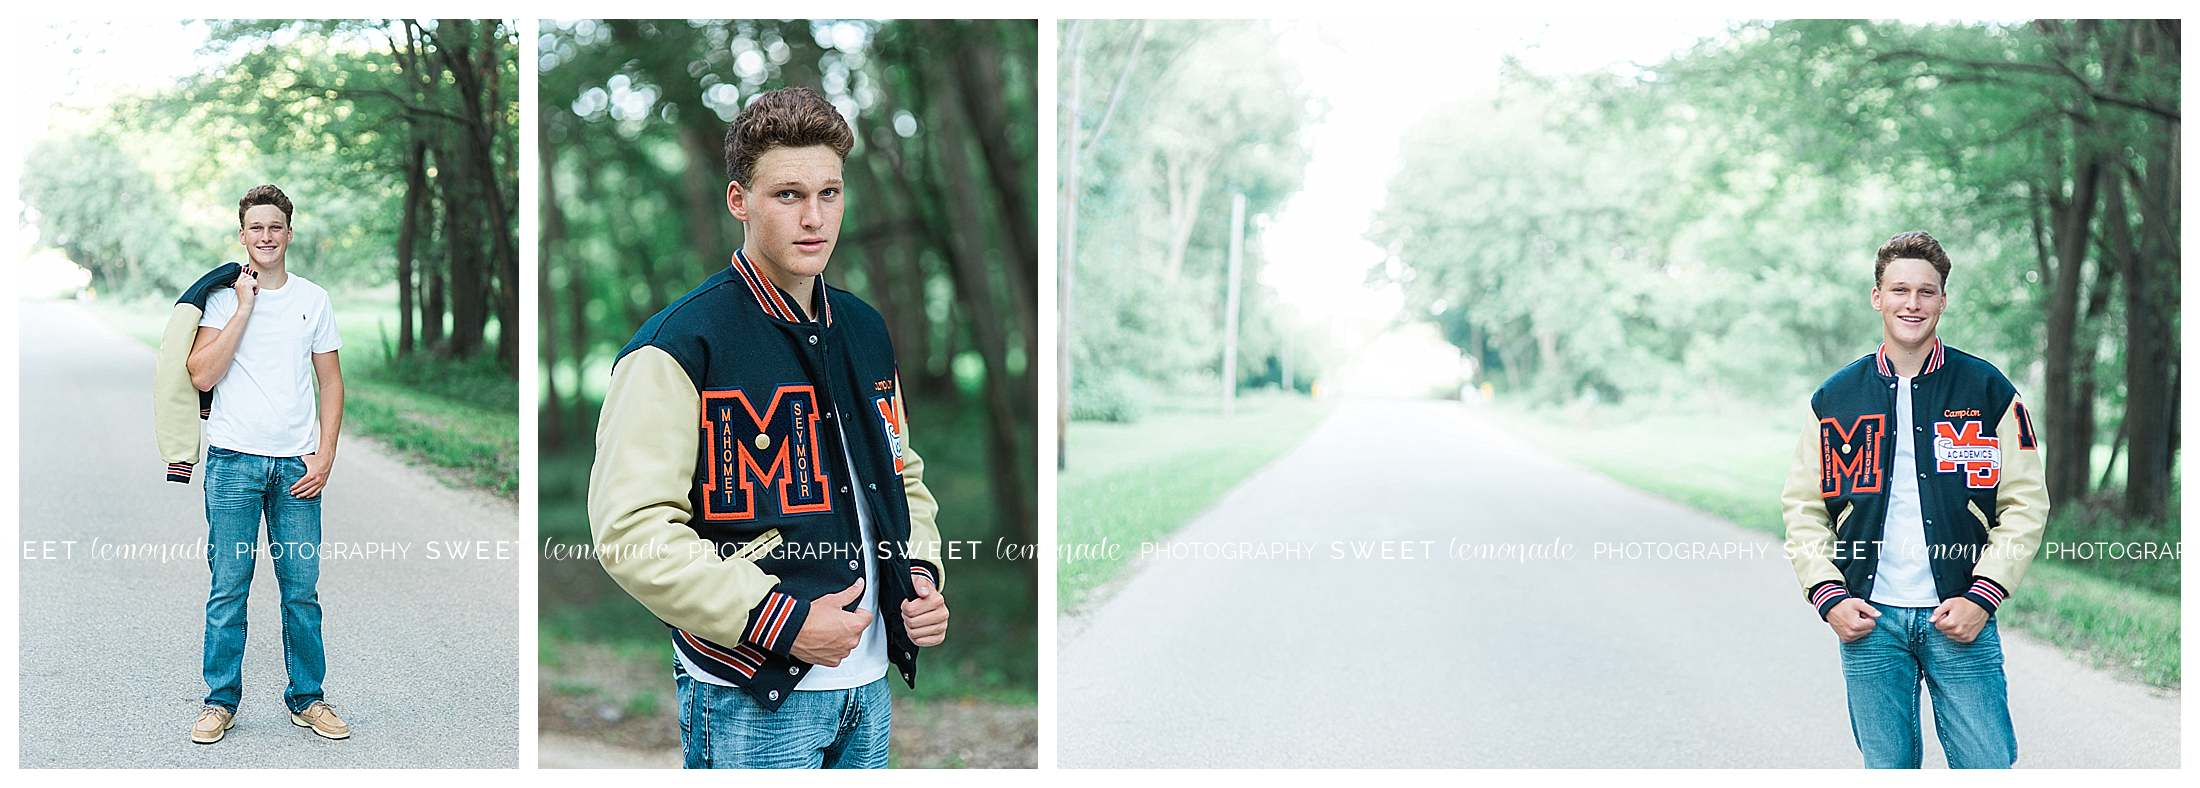 mahomet-bulldogs-basketball-champaign-county-illinois-senior-photography_1600.jpg